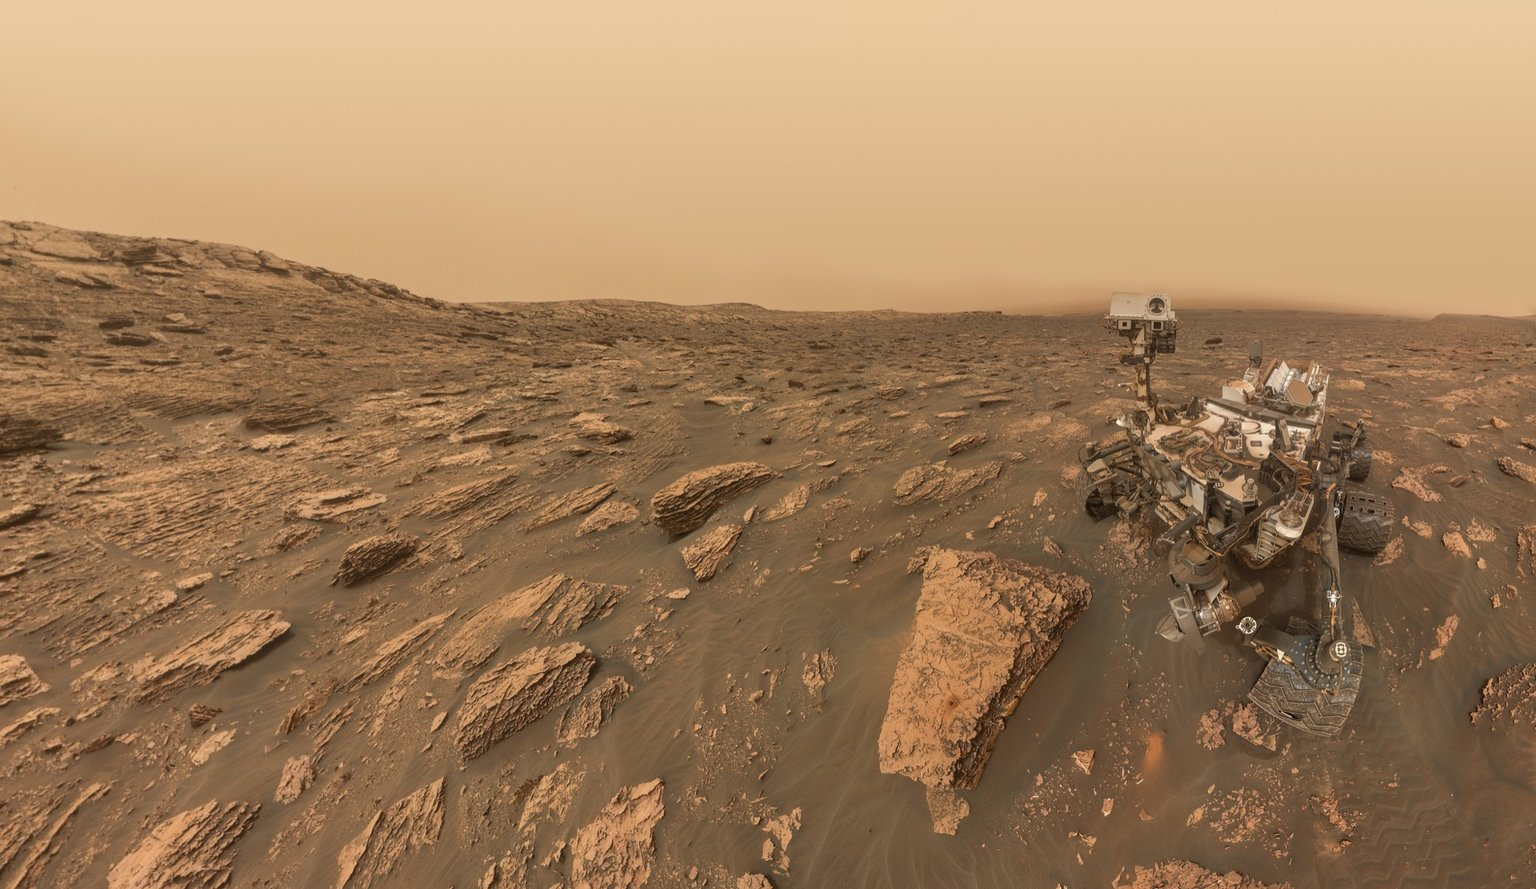 While Opportunity's Mission is in Danger, NASA's Curiosity Rover Took a Selfie During a Storm on ...